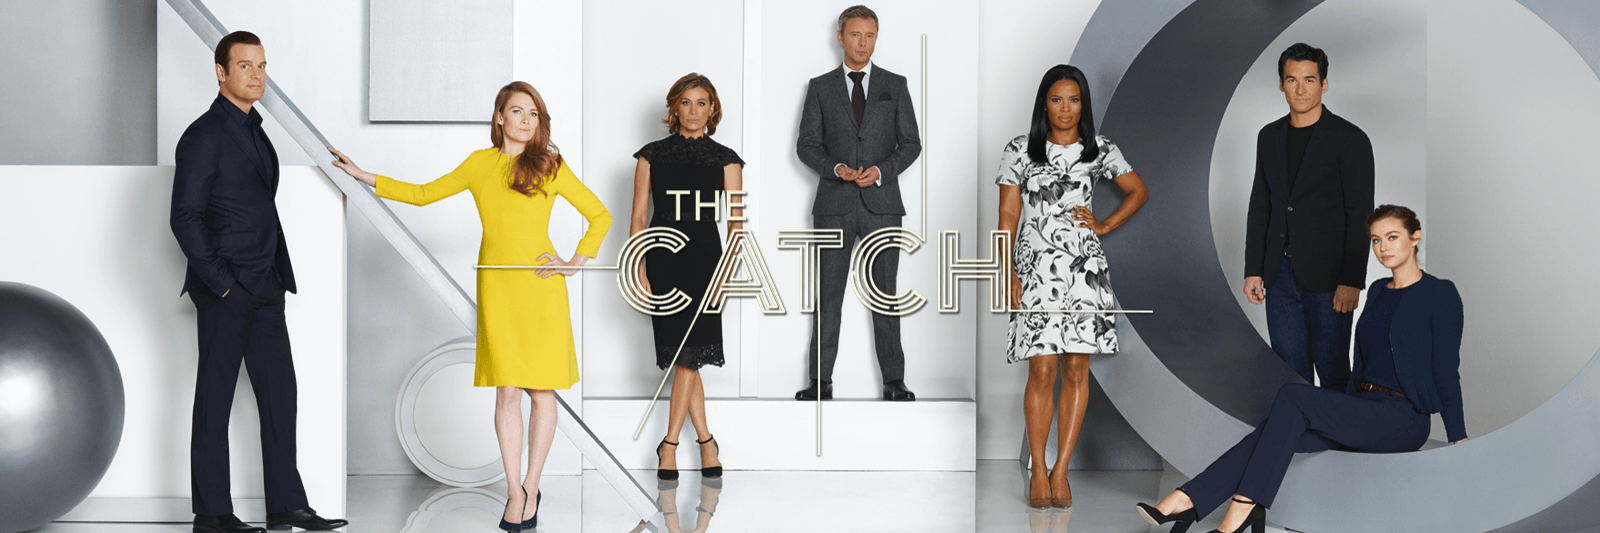 27 the catch billboard 004 pre